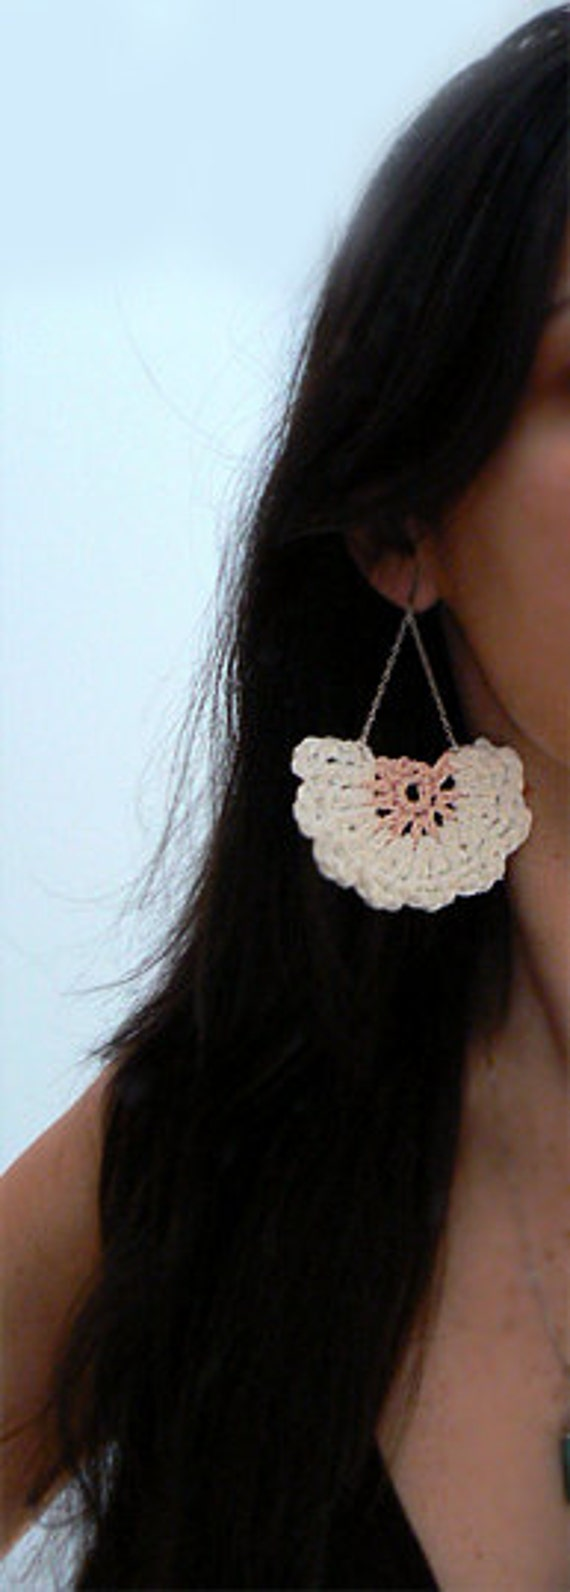 Chandelier white lace crochet earrings. Boho flower earrings. Crochet jewelry. Fiber art crochet earrings. Women crochet earrings gift